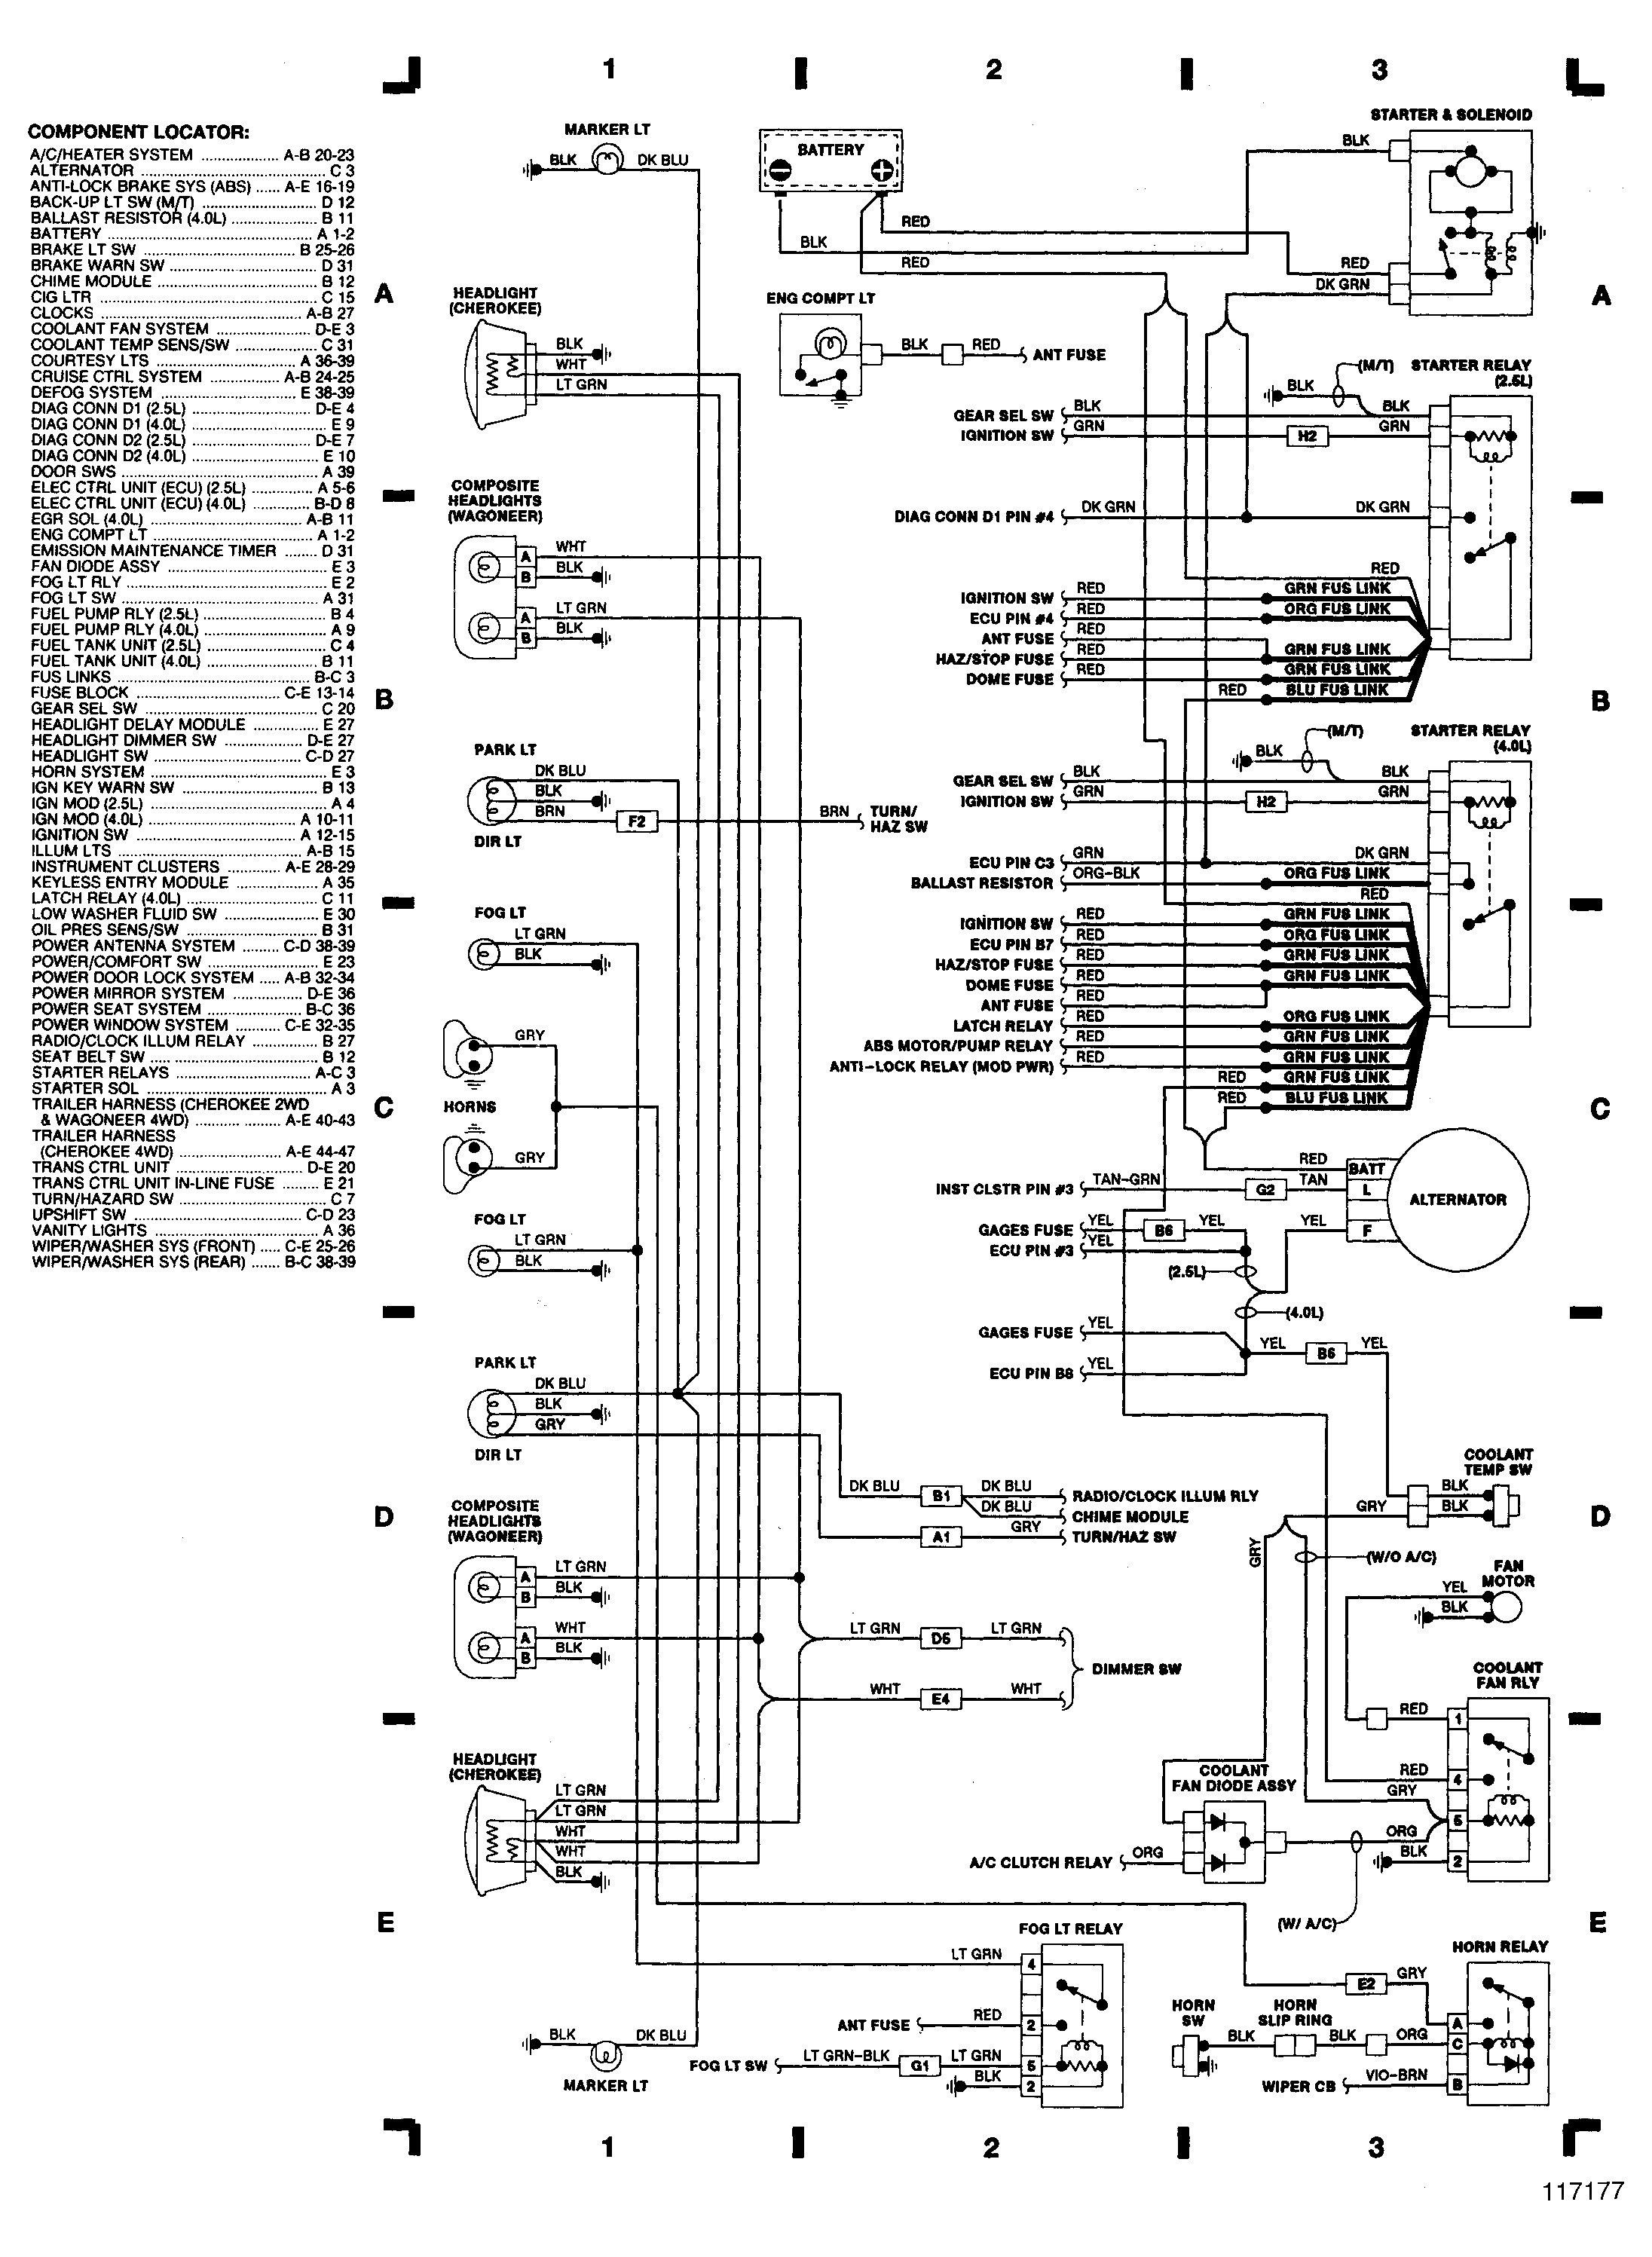 16 1995 Dodge Ram Engine Wiring Diagram Engine Diagram Wiringg Net 2001 Dodge Ram 1500 Dodge Ram Dodge